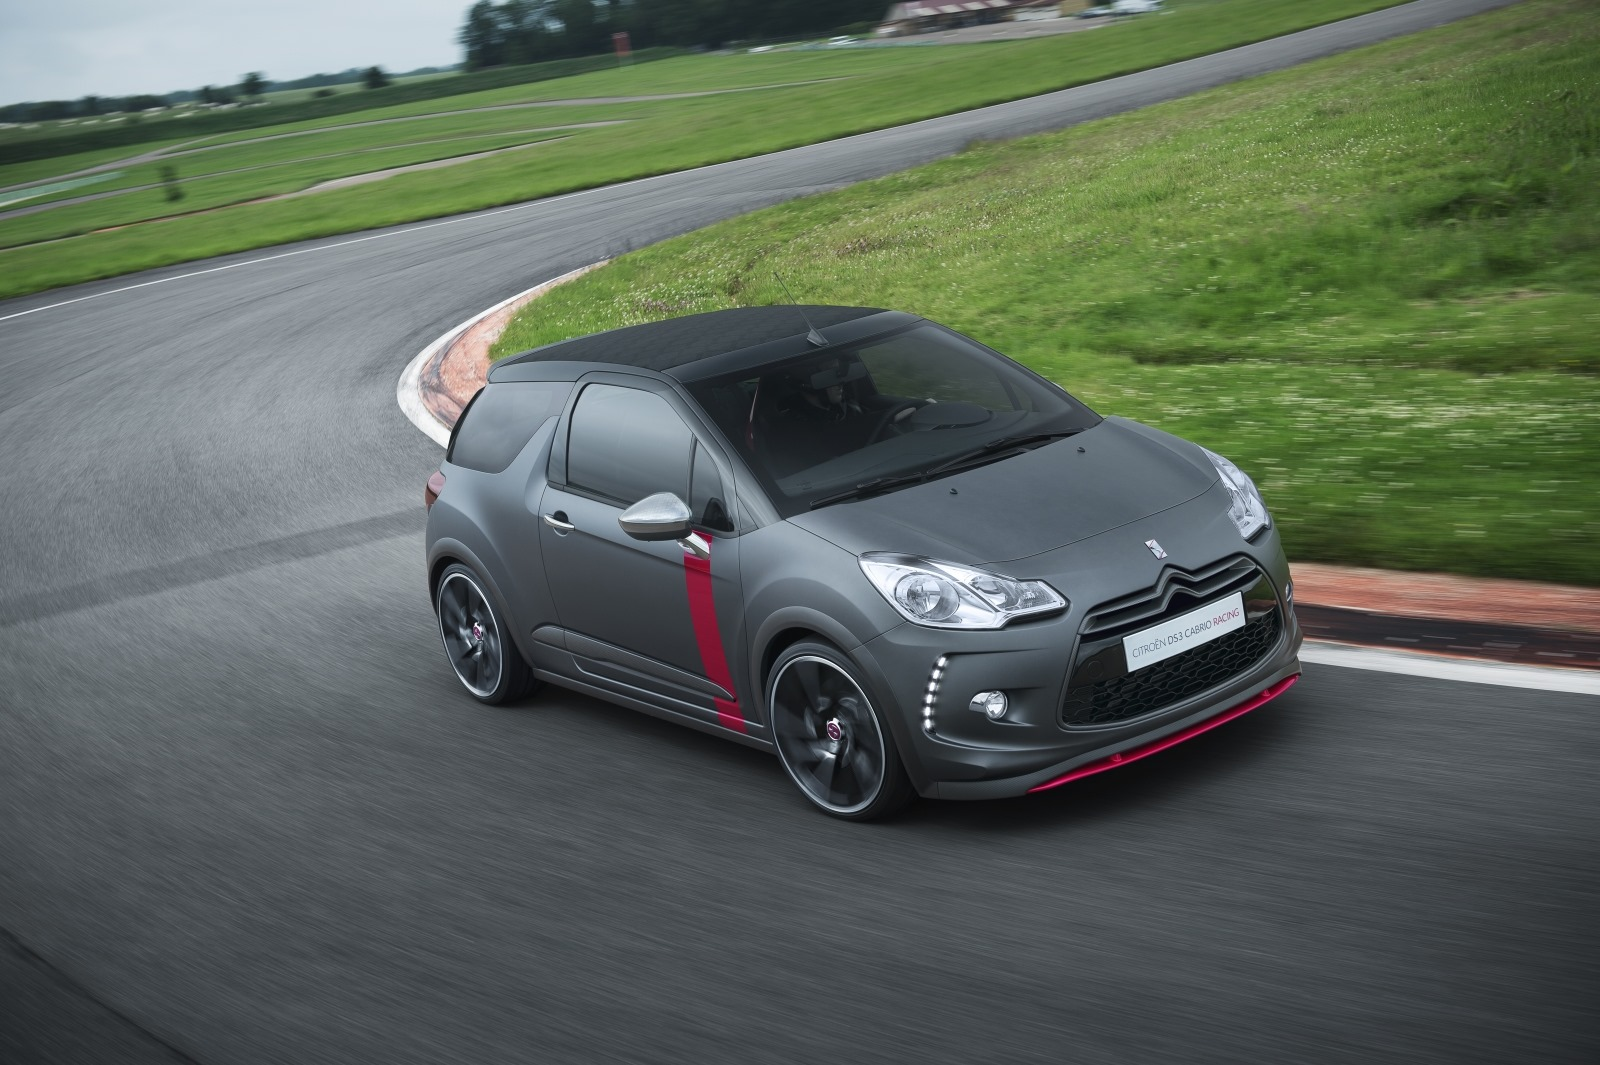 2019 Citroen DS3 Cabrio Racing Concept photo - 6